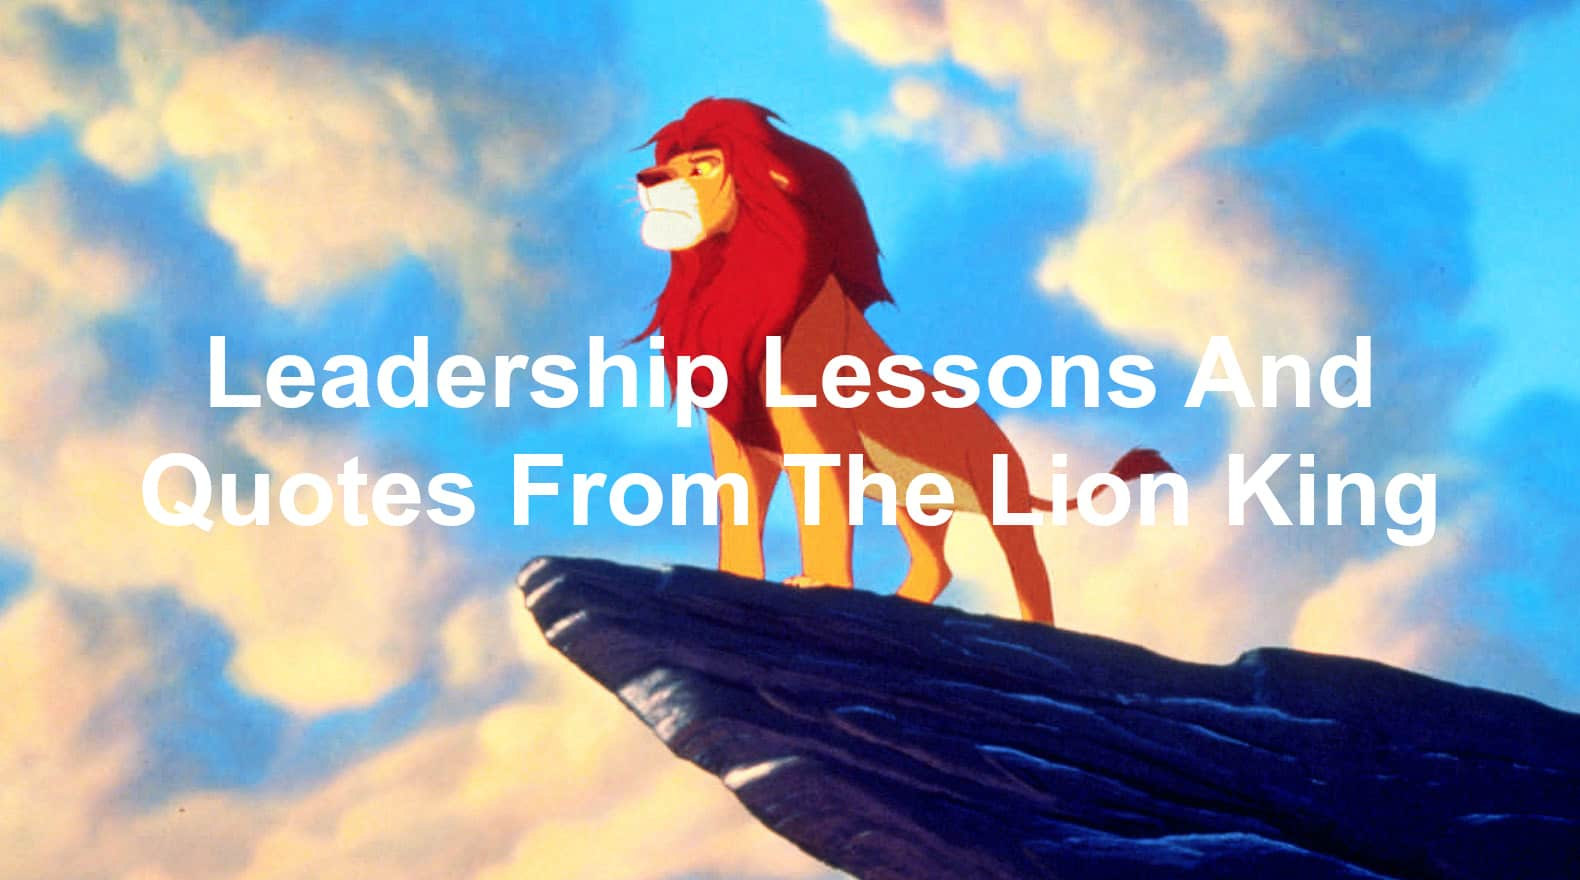 Lion King Quotes Leadership Lessons And Quotes From Disney's The Lion King   Joseph  Lion King Quotes